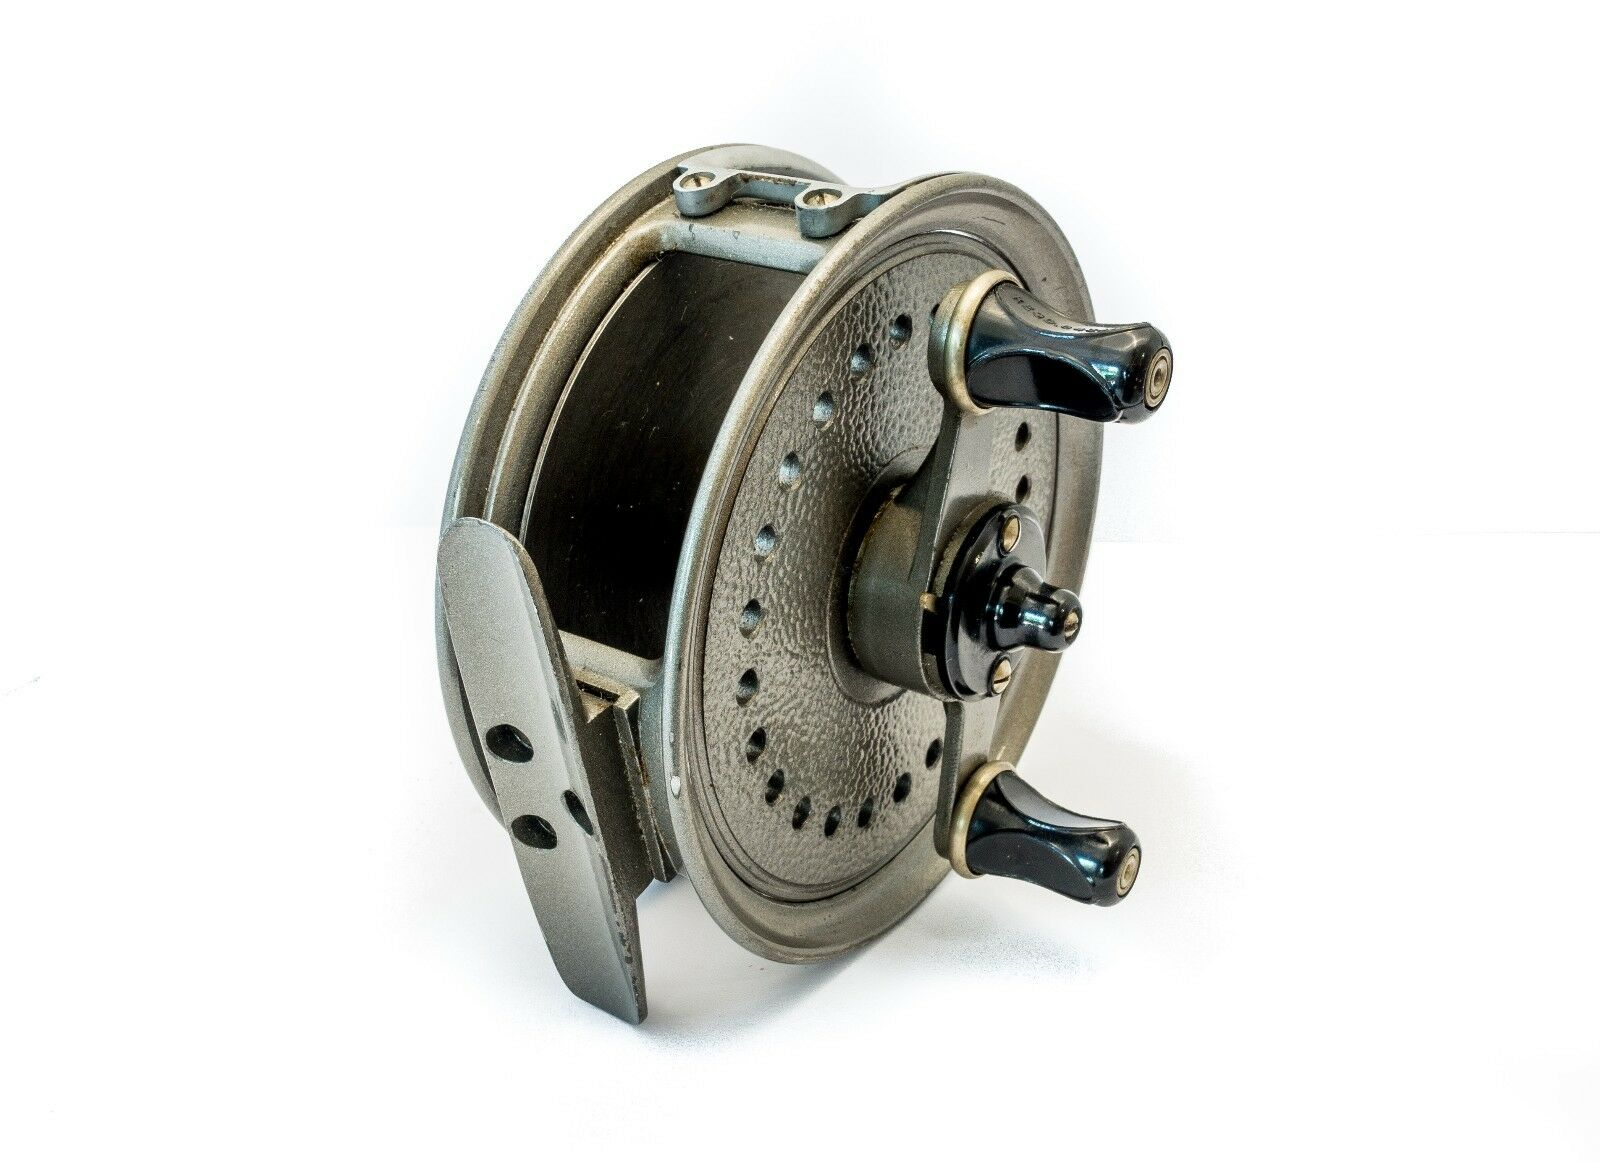 J W Young of Redditch Landex salmon fly fishing reel with spool line